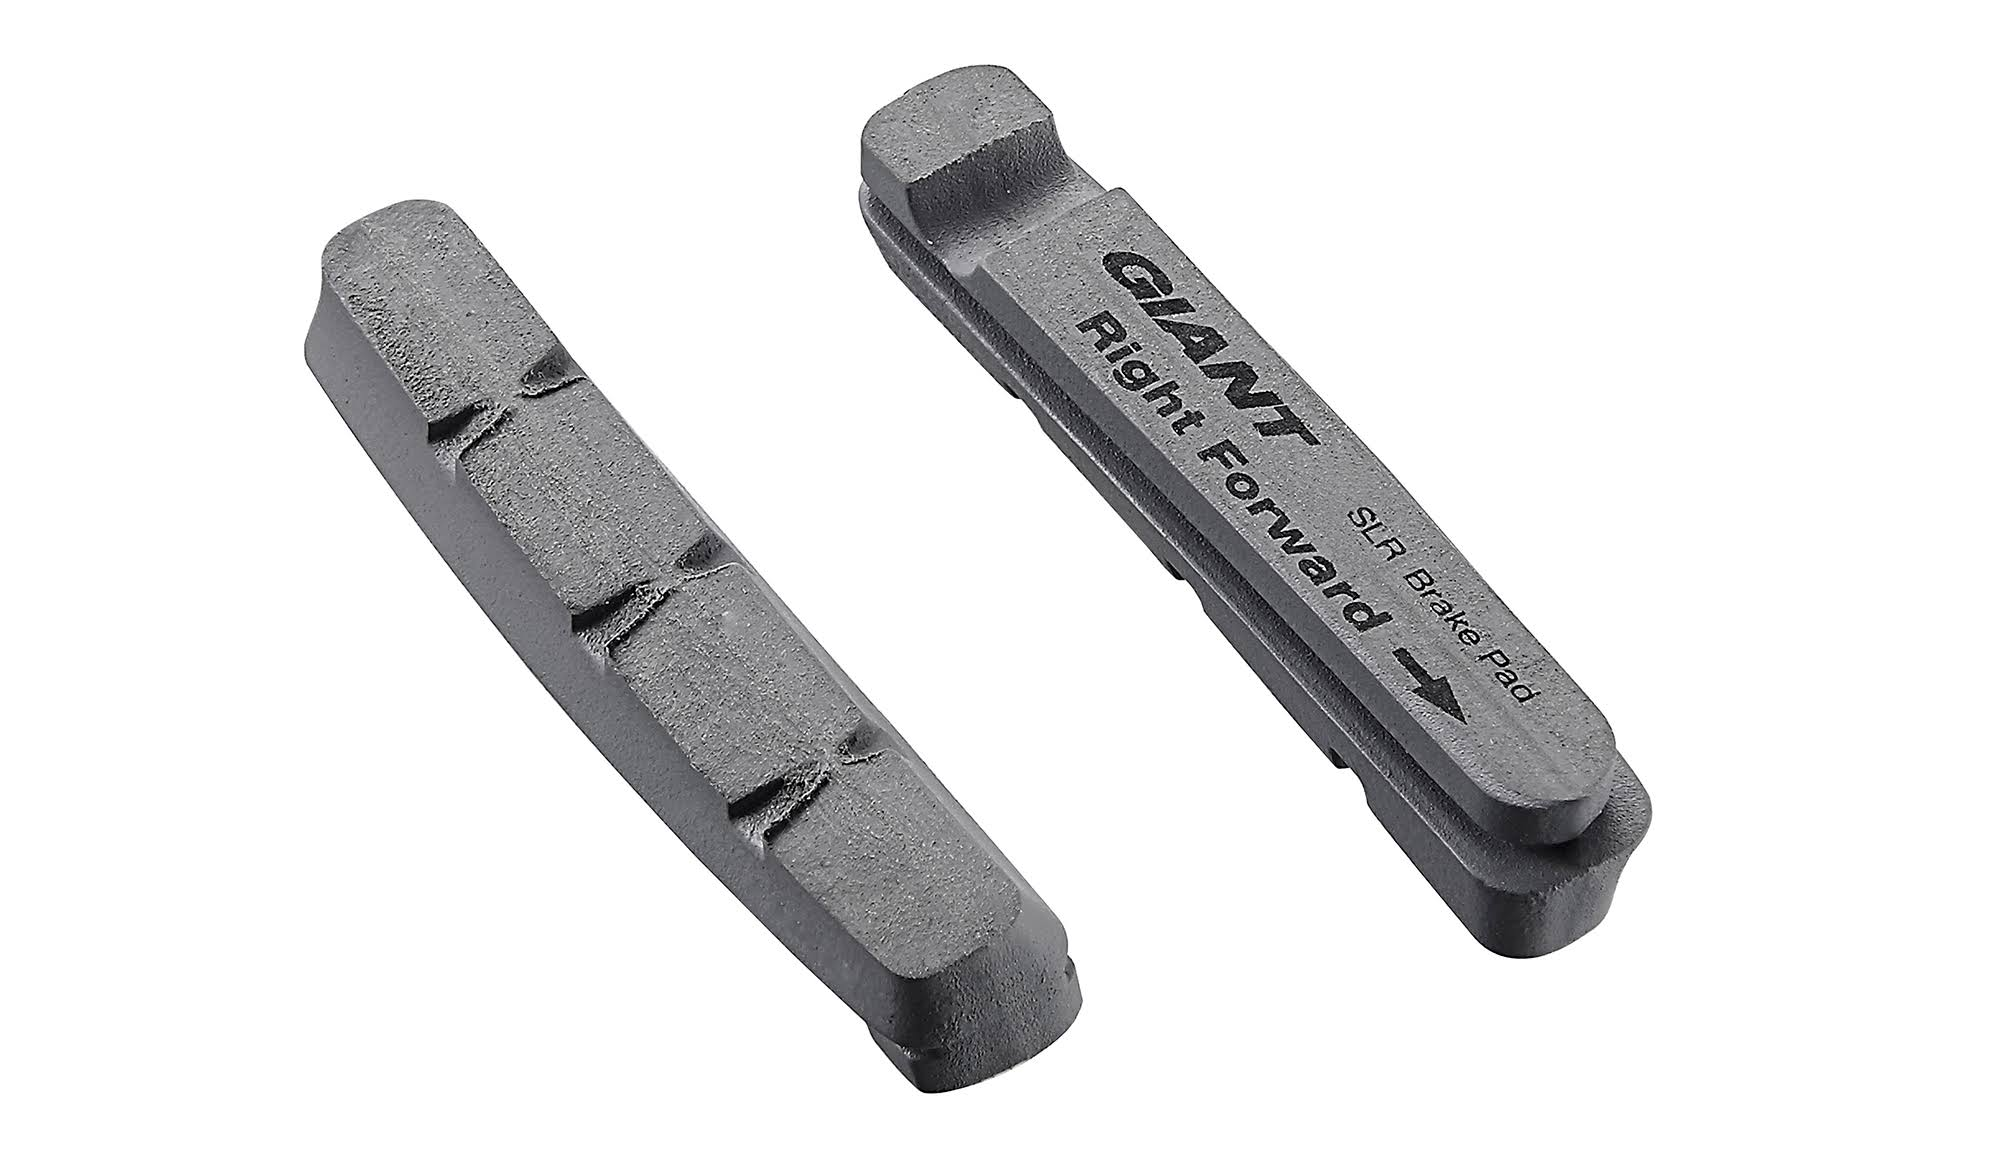 Giant SLR Carbon High Performance Brake Pads